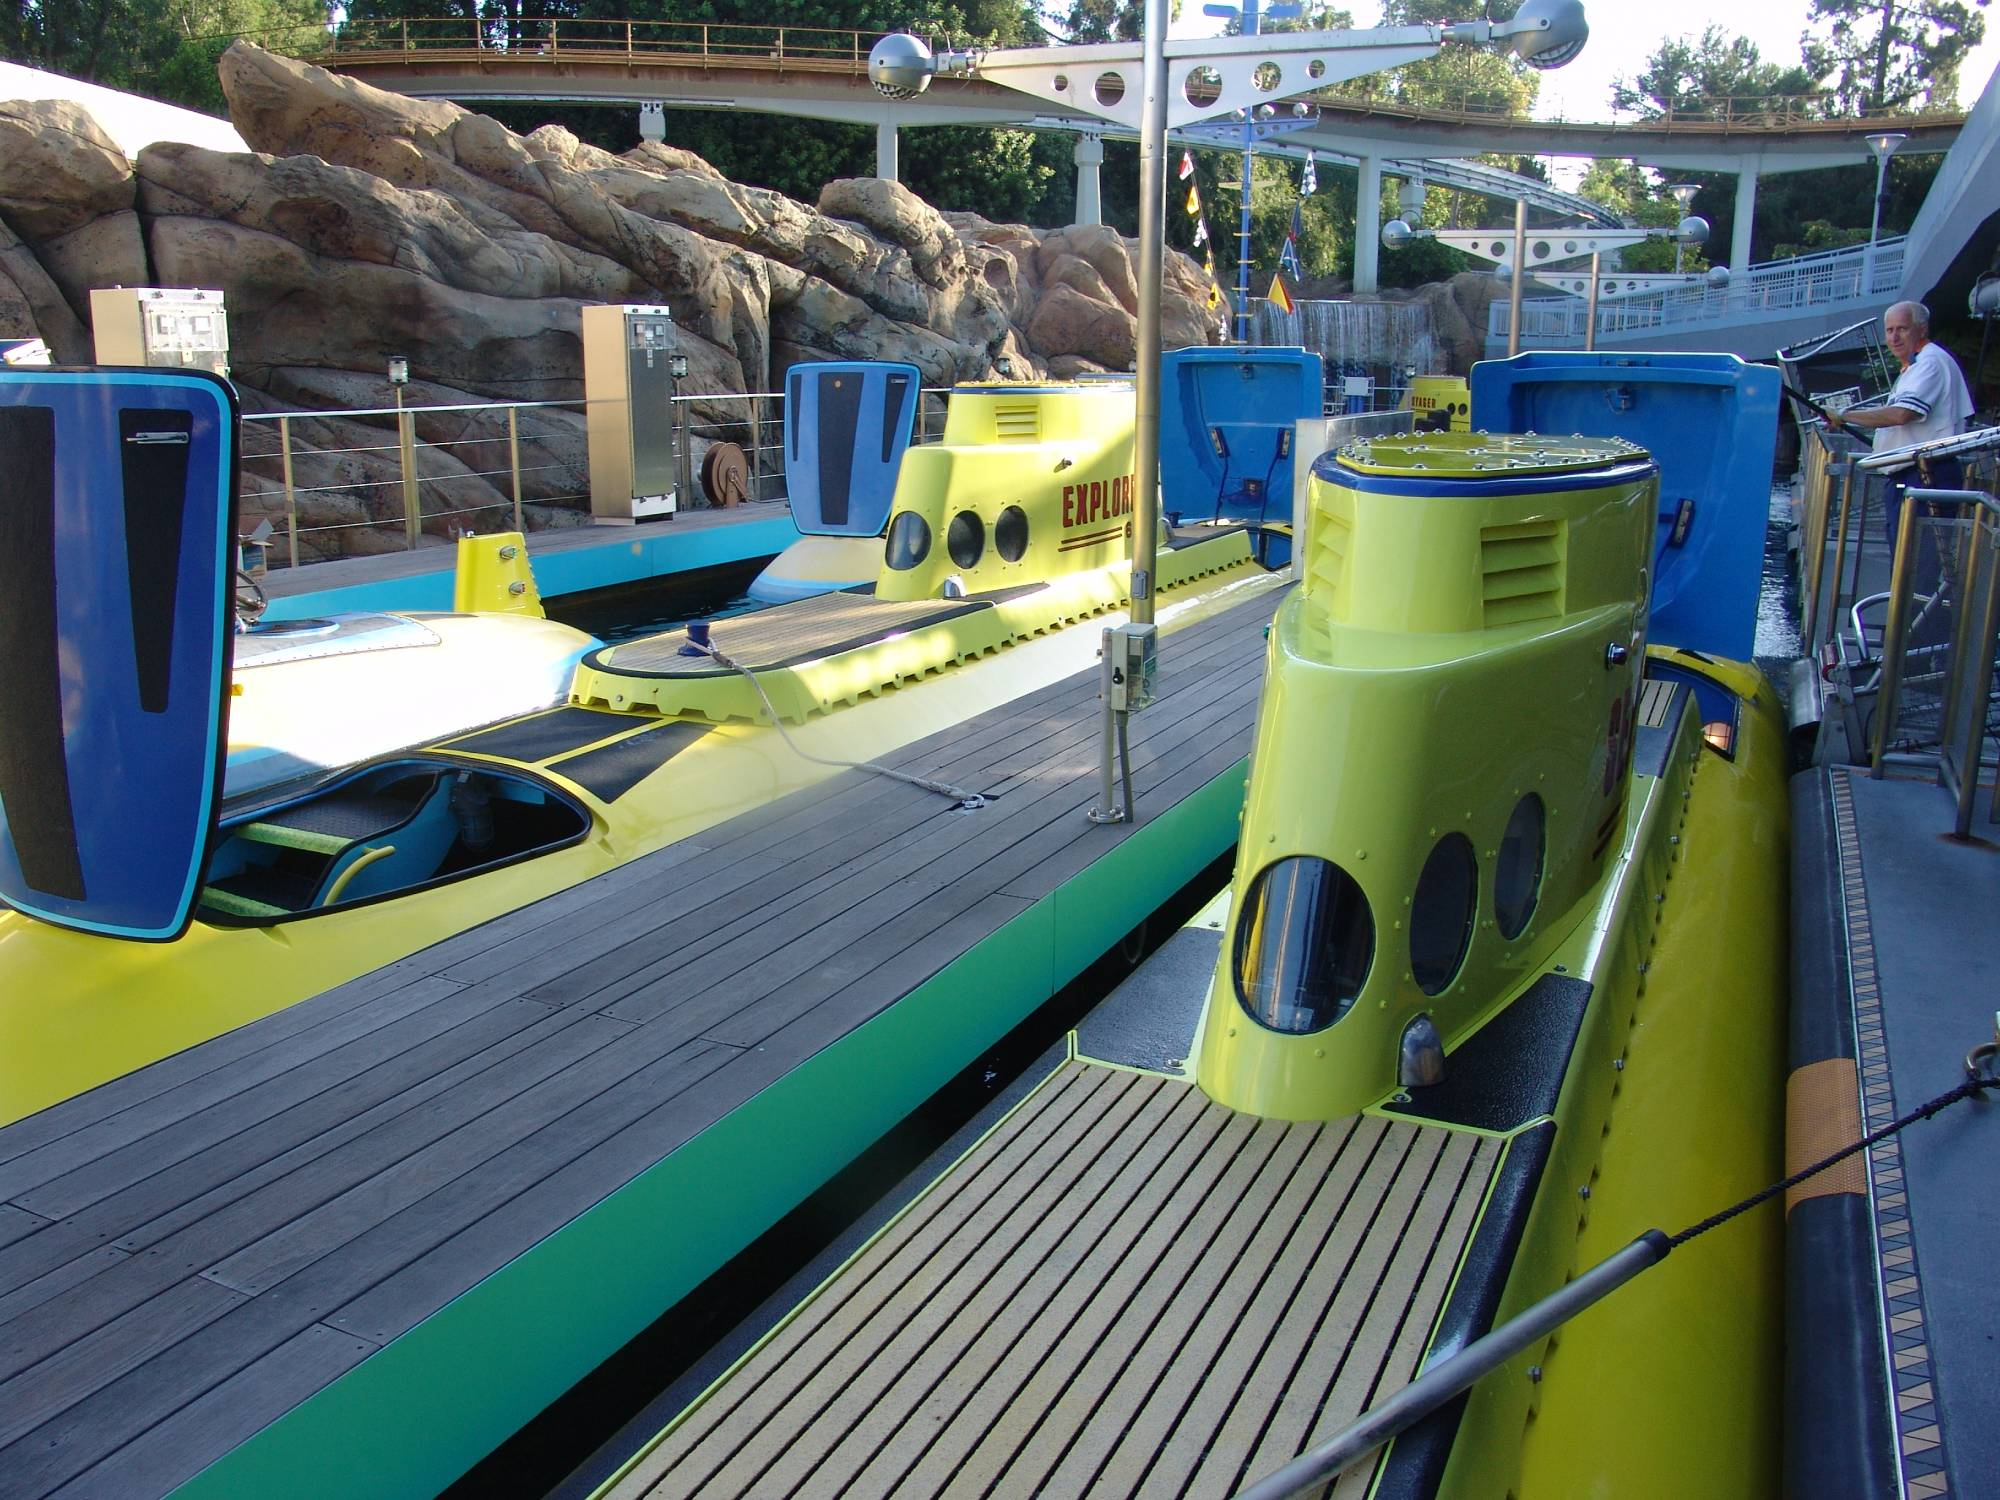 Disneyland - Finding Nemo Submarines photo